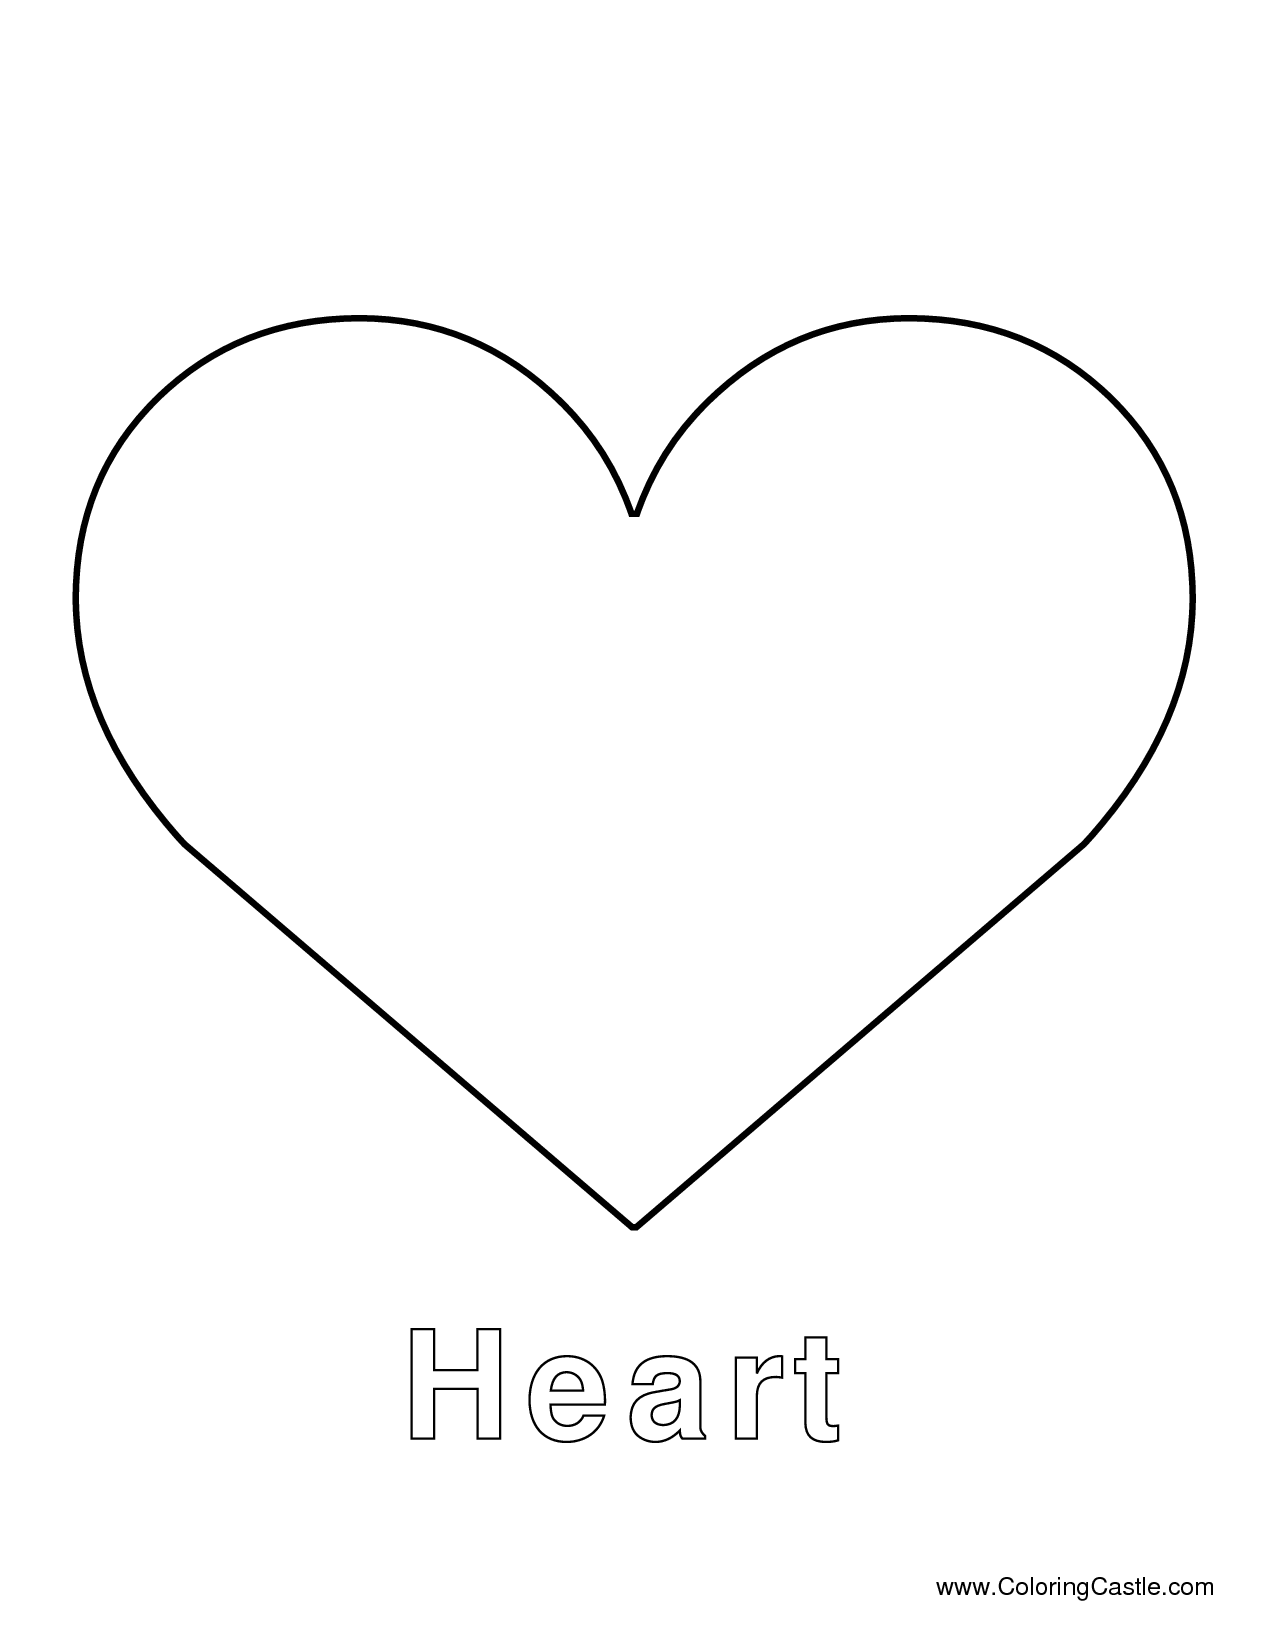 This Heart Has A Stylish Shape Yet The Lines Are Simple Making It Ideal For Use Use This